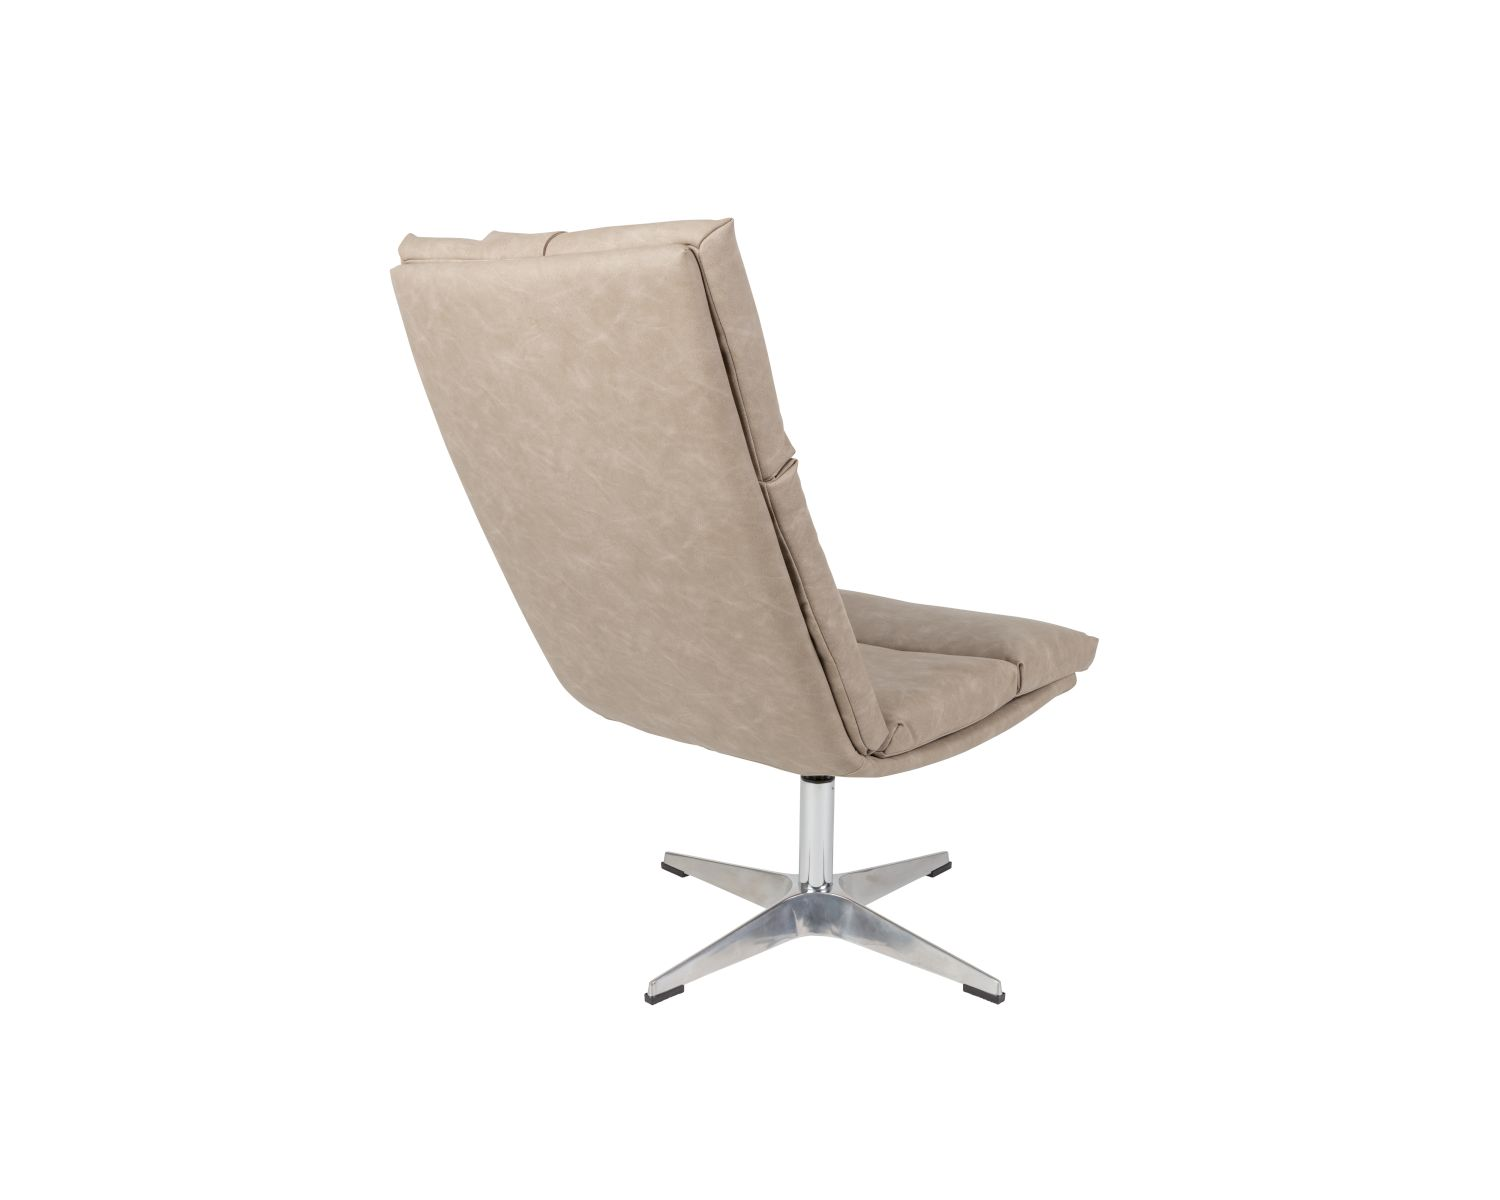 Chill Sessel Designline Lounge Sessel Chill Set Kaufen Slewo